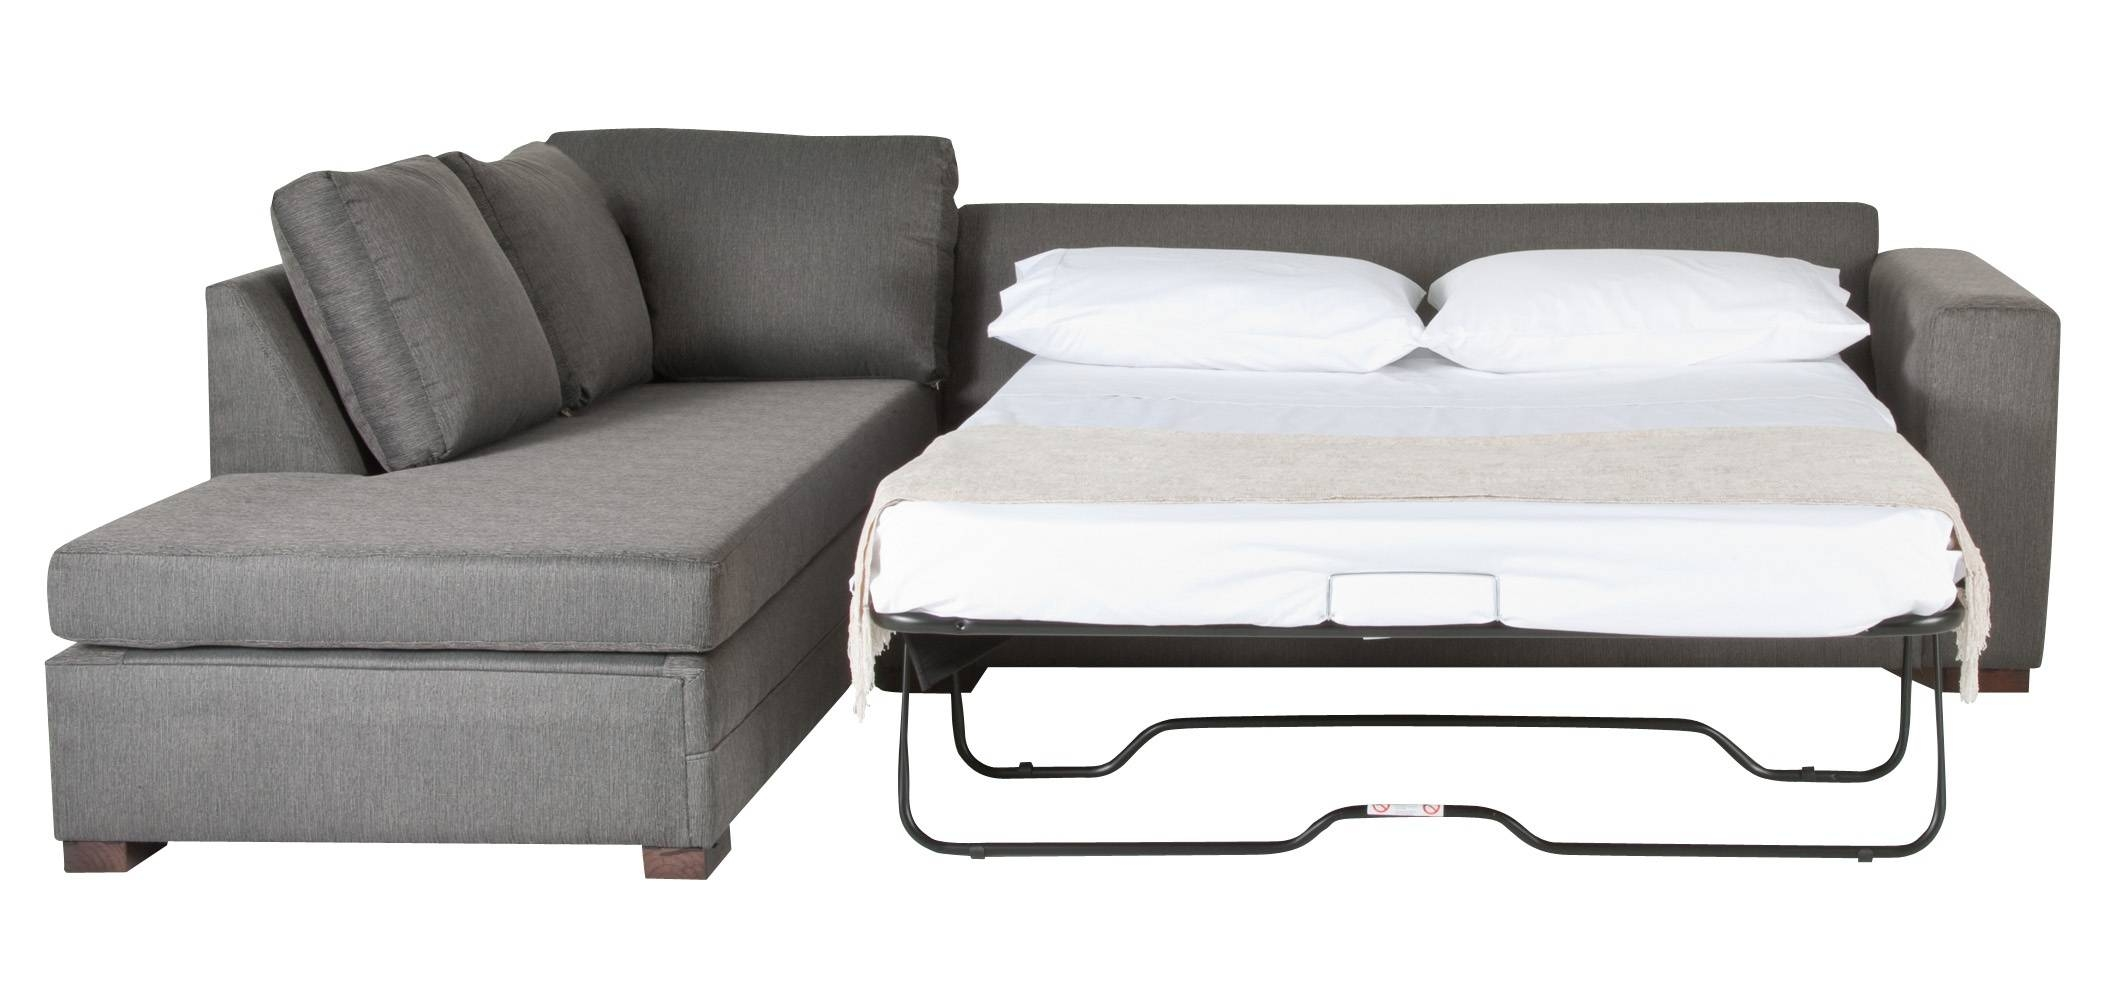 Fold Out Sectional Sleeper Sofa - Hotelsbacau with Braxton Sectional Sofas (Image 9 of 15)